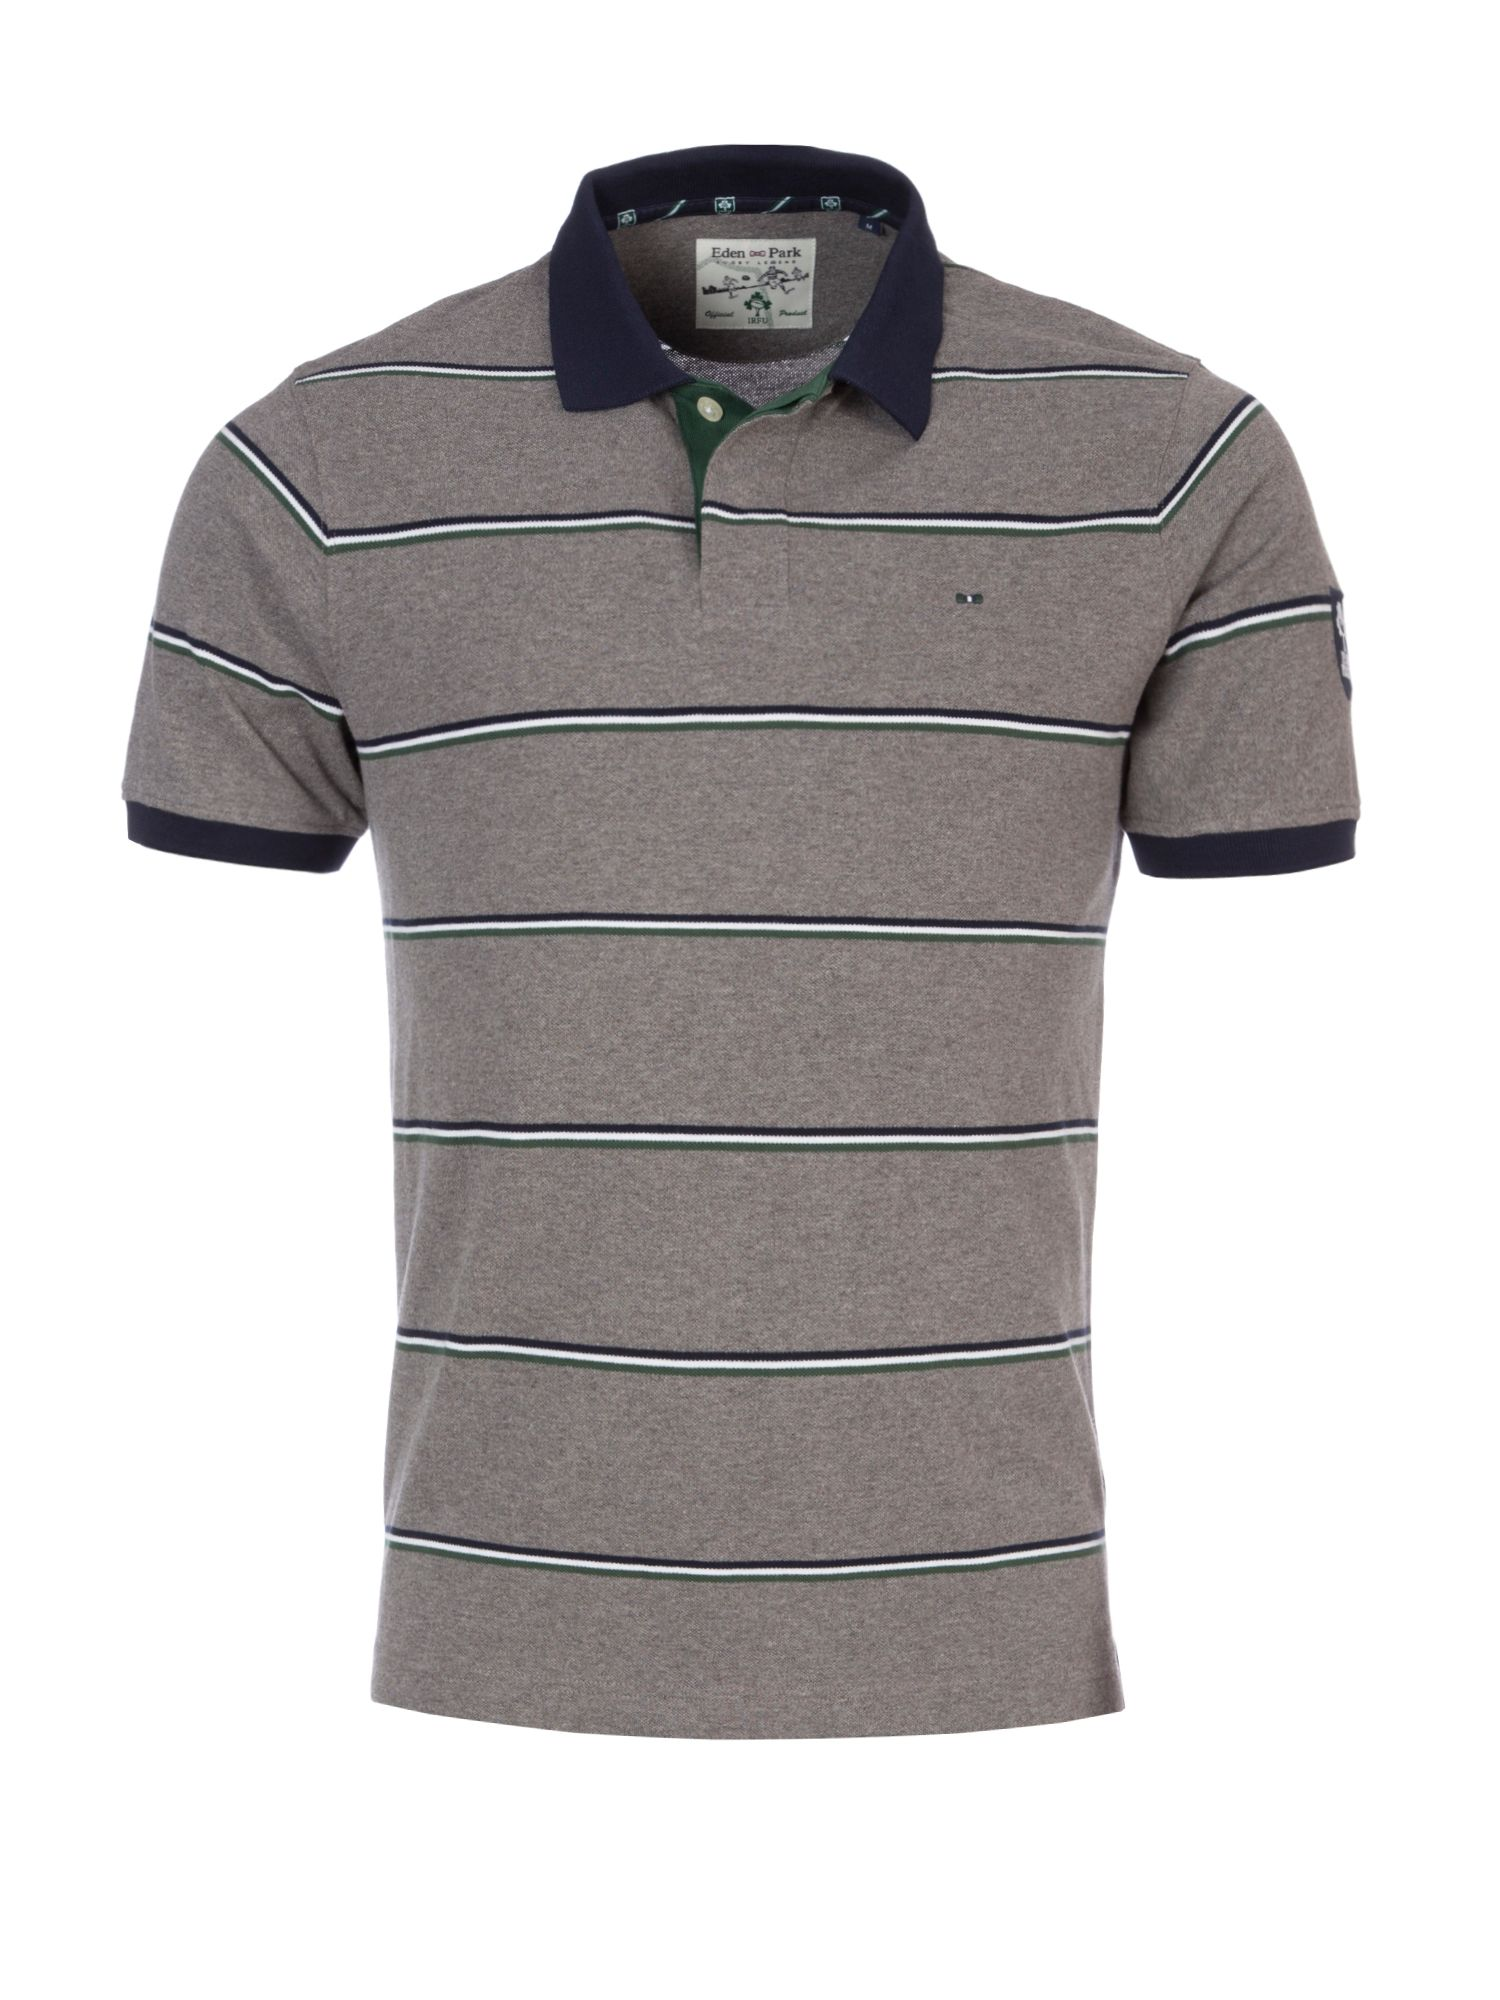 Men's Eden Park Striped Polo Shirt With Logo Embroidery, Grey Review thumbnail